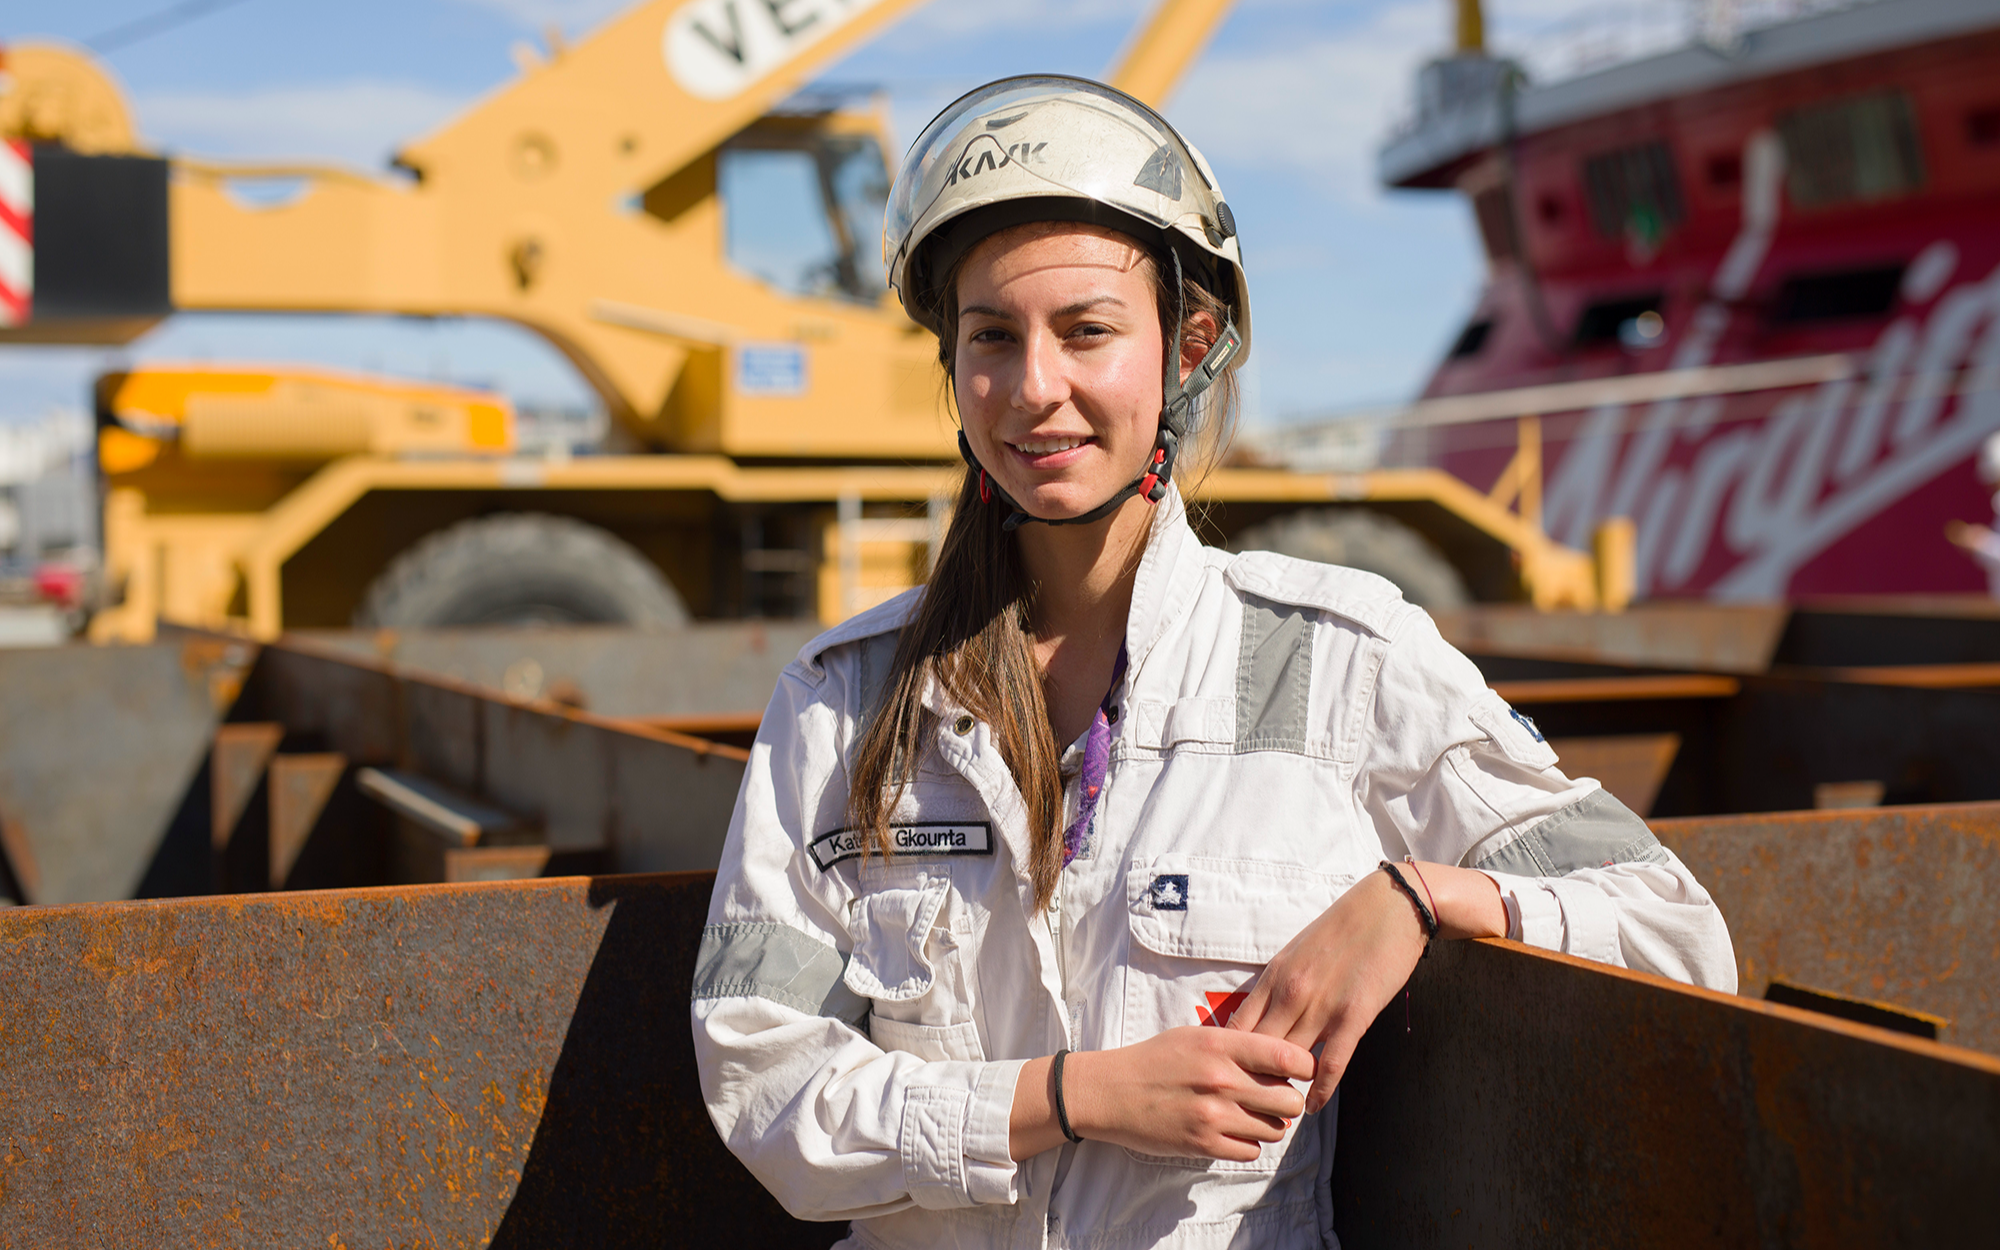 Katerina Gkounta at the Scarlet Lady construction site